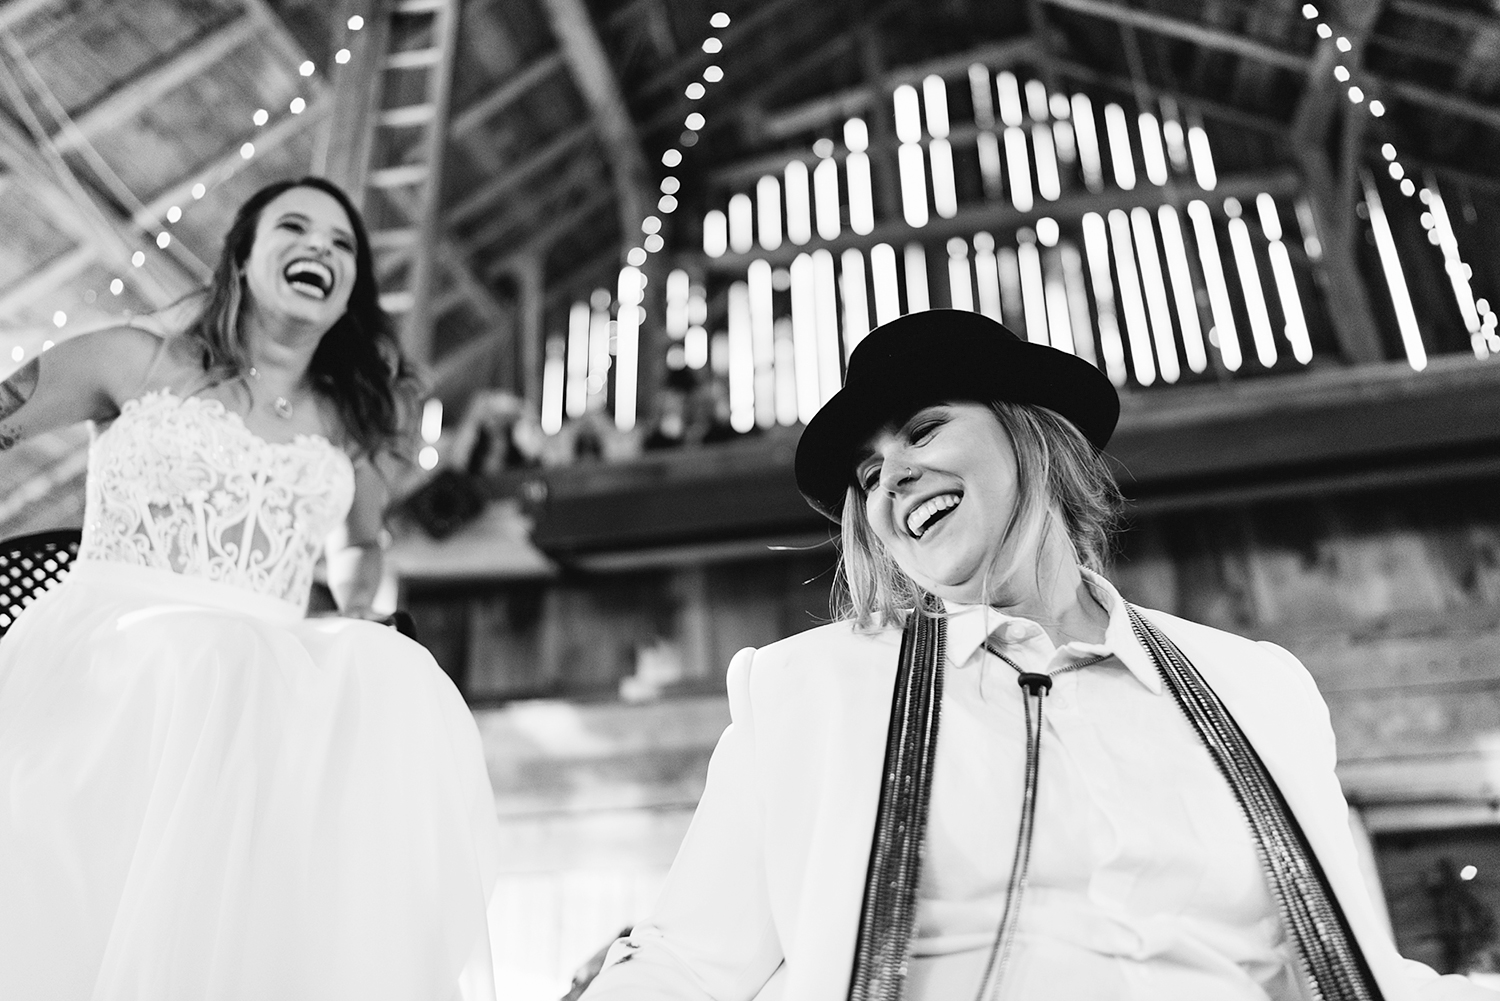 cambium-farms-wedding-ryanne-hollies-photography-gay-wedding-lgbtq-trendy-cool-badass-junebug-weddings-inspiration-cocktail-hour-bride-and-bride-entering-reception-celebration-horah-jewish-tradition-bride-lifted-up-in-chairs.jpg